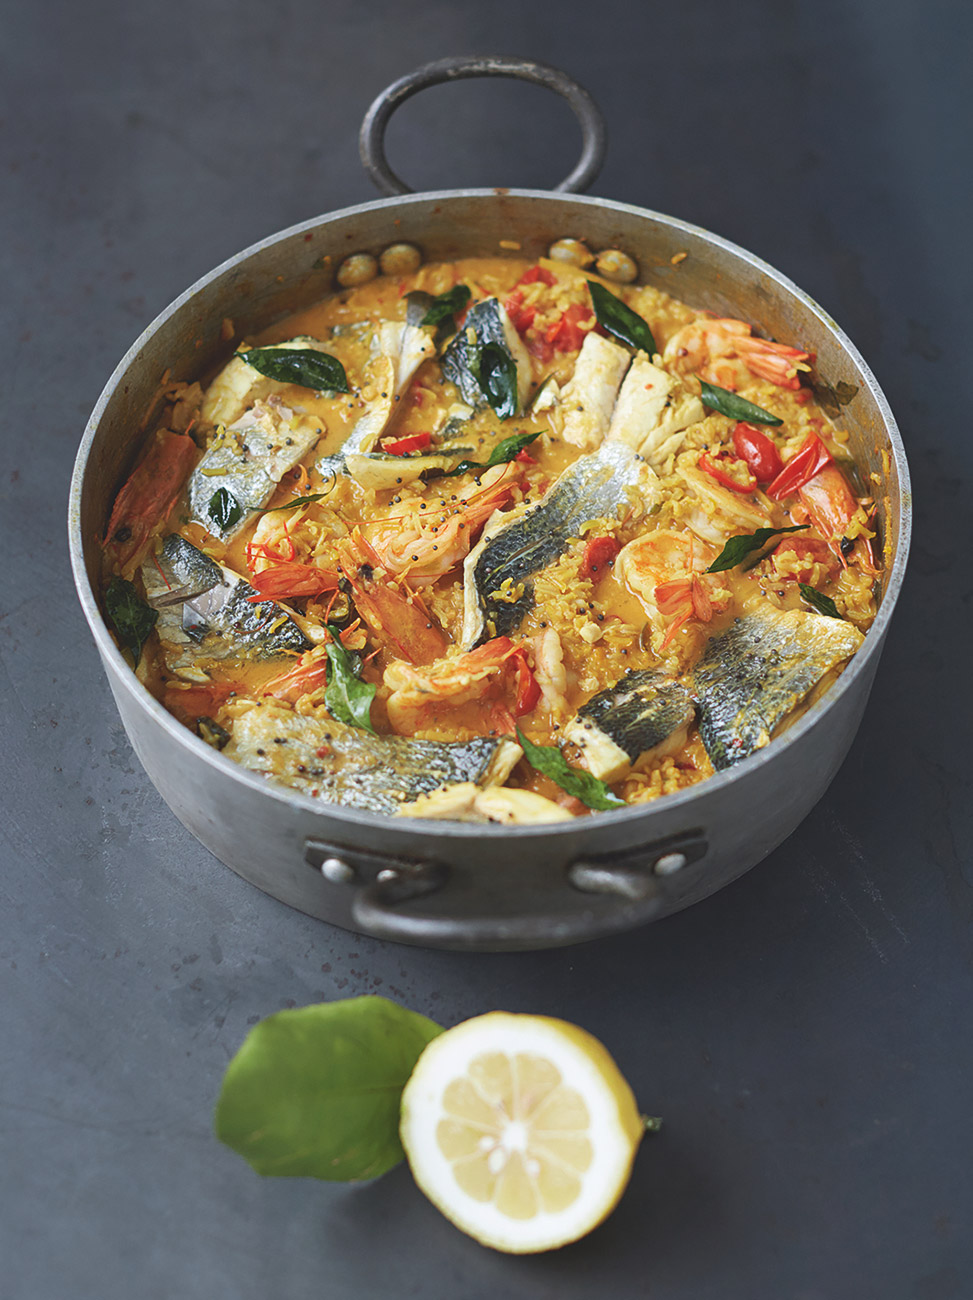 JO_Super-Food_Day-29_Easy-Curried-Fish-Stew-Reshoot-32_preview-2